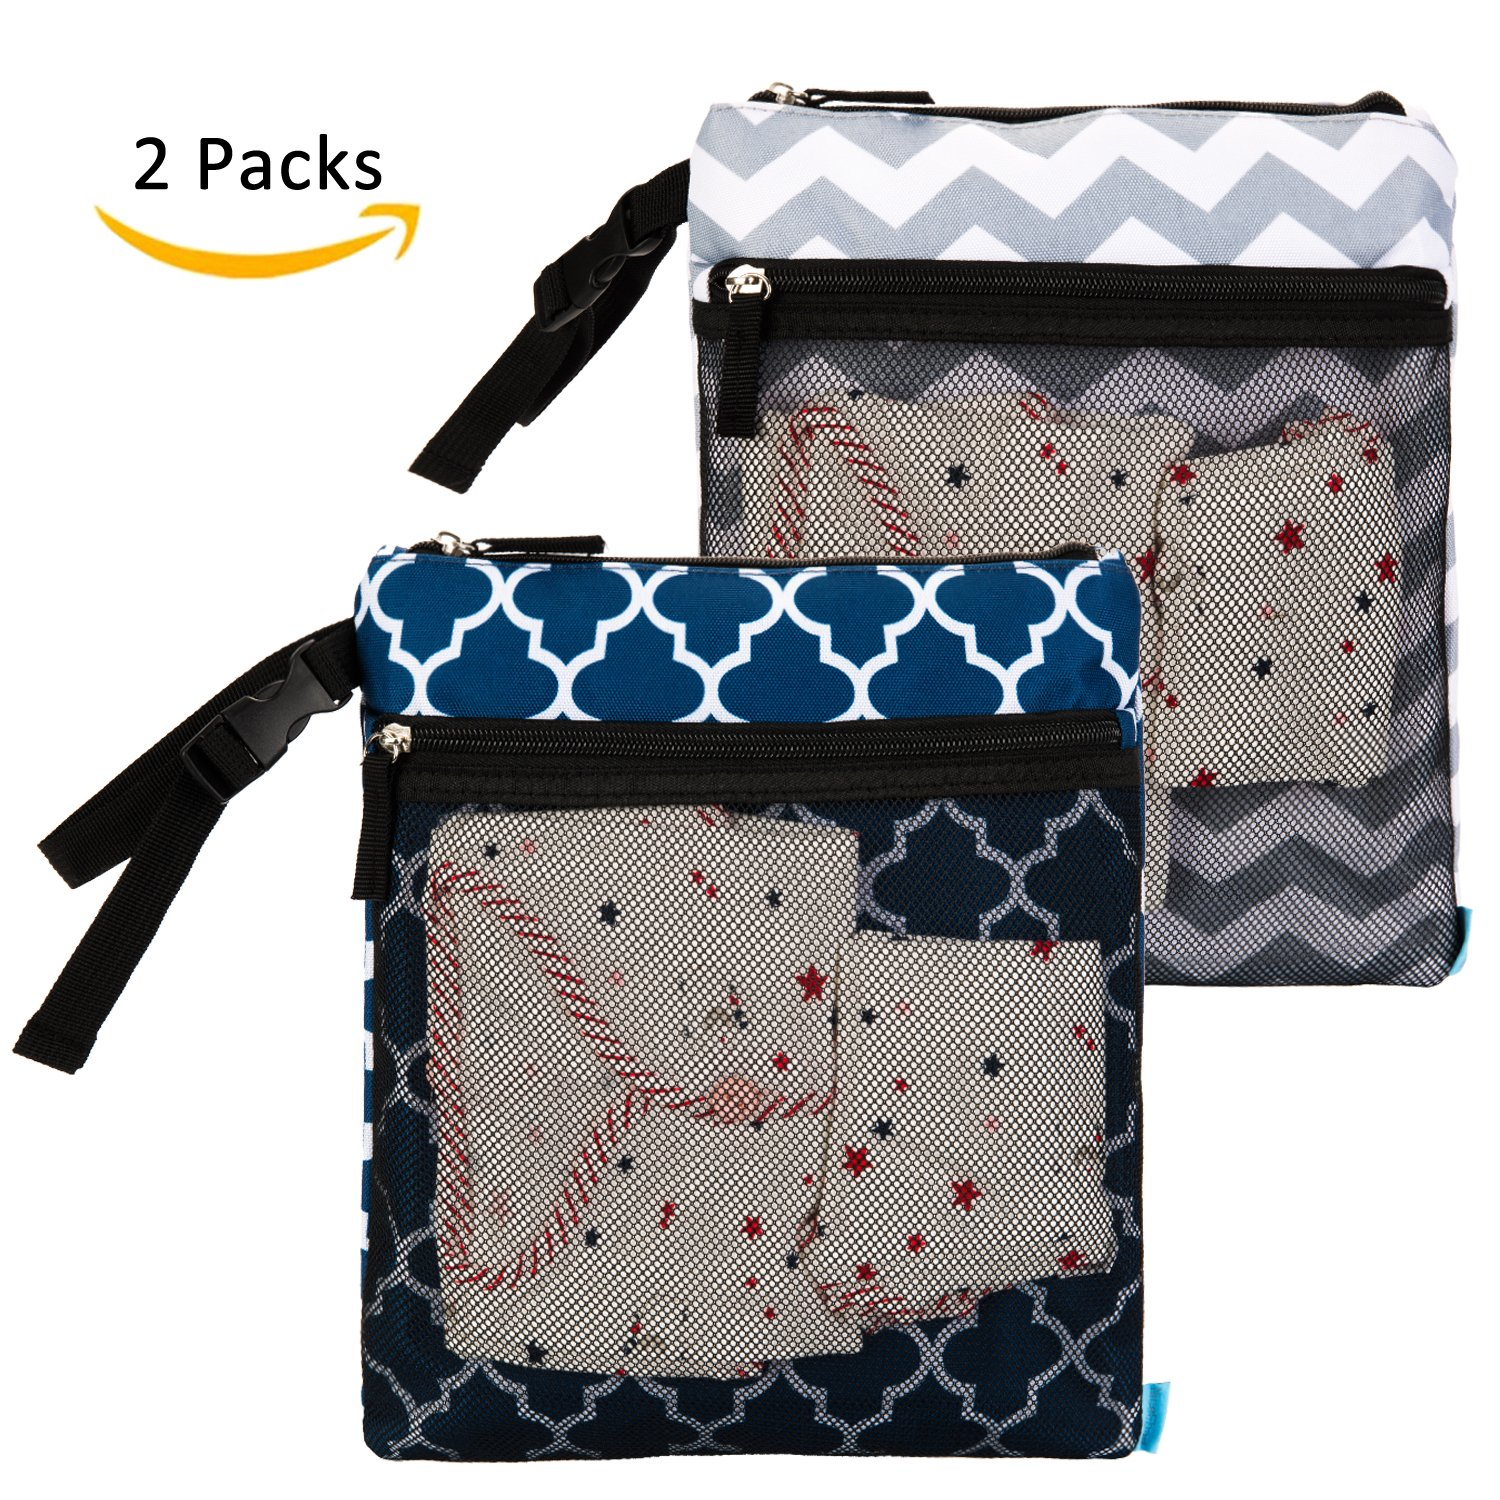 NiceEbag 2 pcs Baby Wet and Dry Cloth Diaper Bags Travel Nappy Organizer Bag Waterproof Reusable with Two Zippered Pockets(Grey Arrow and Black Peony)